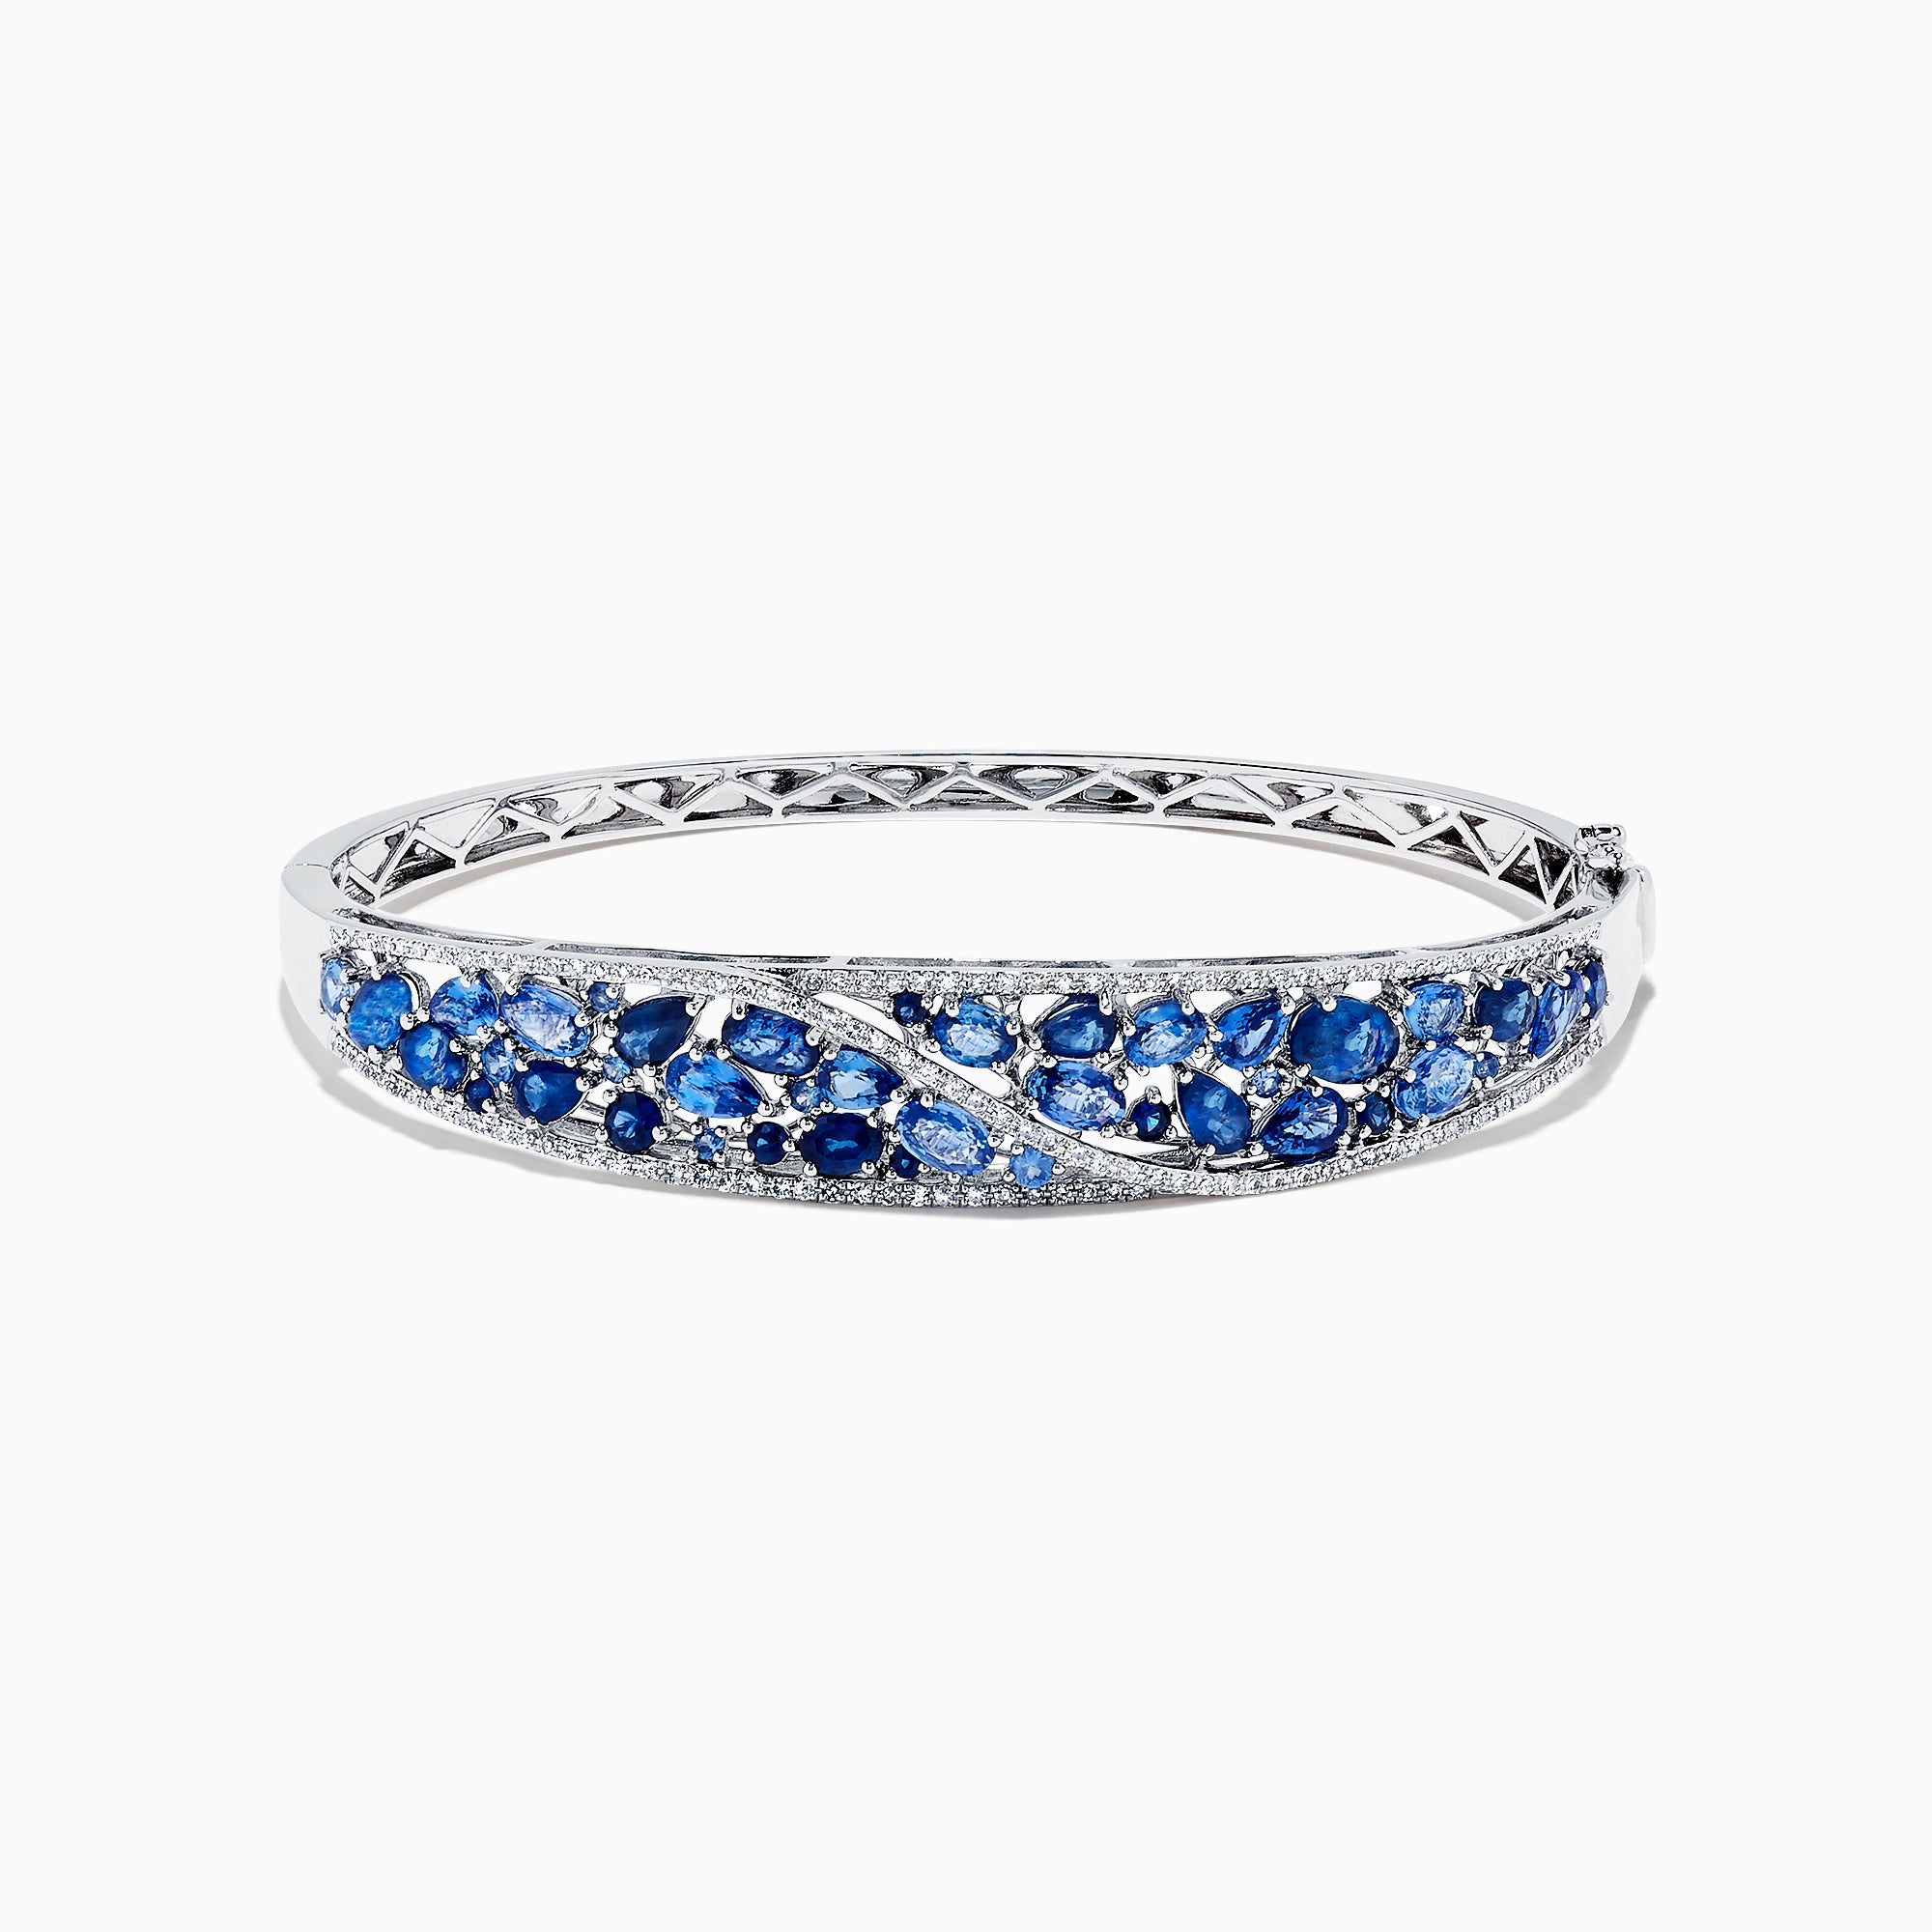 Effy Gemma 14K White Gold Natural Blue Sapphire & Diamond Bangle, 7.82 TCW